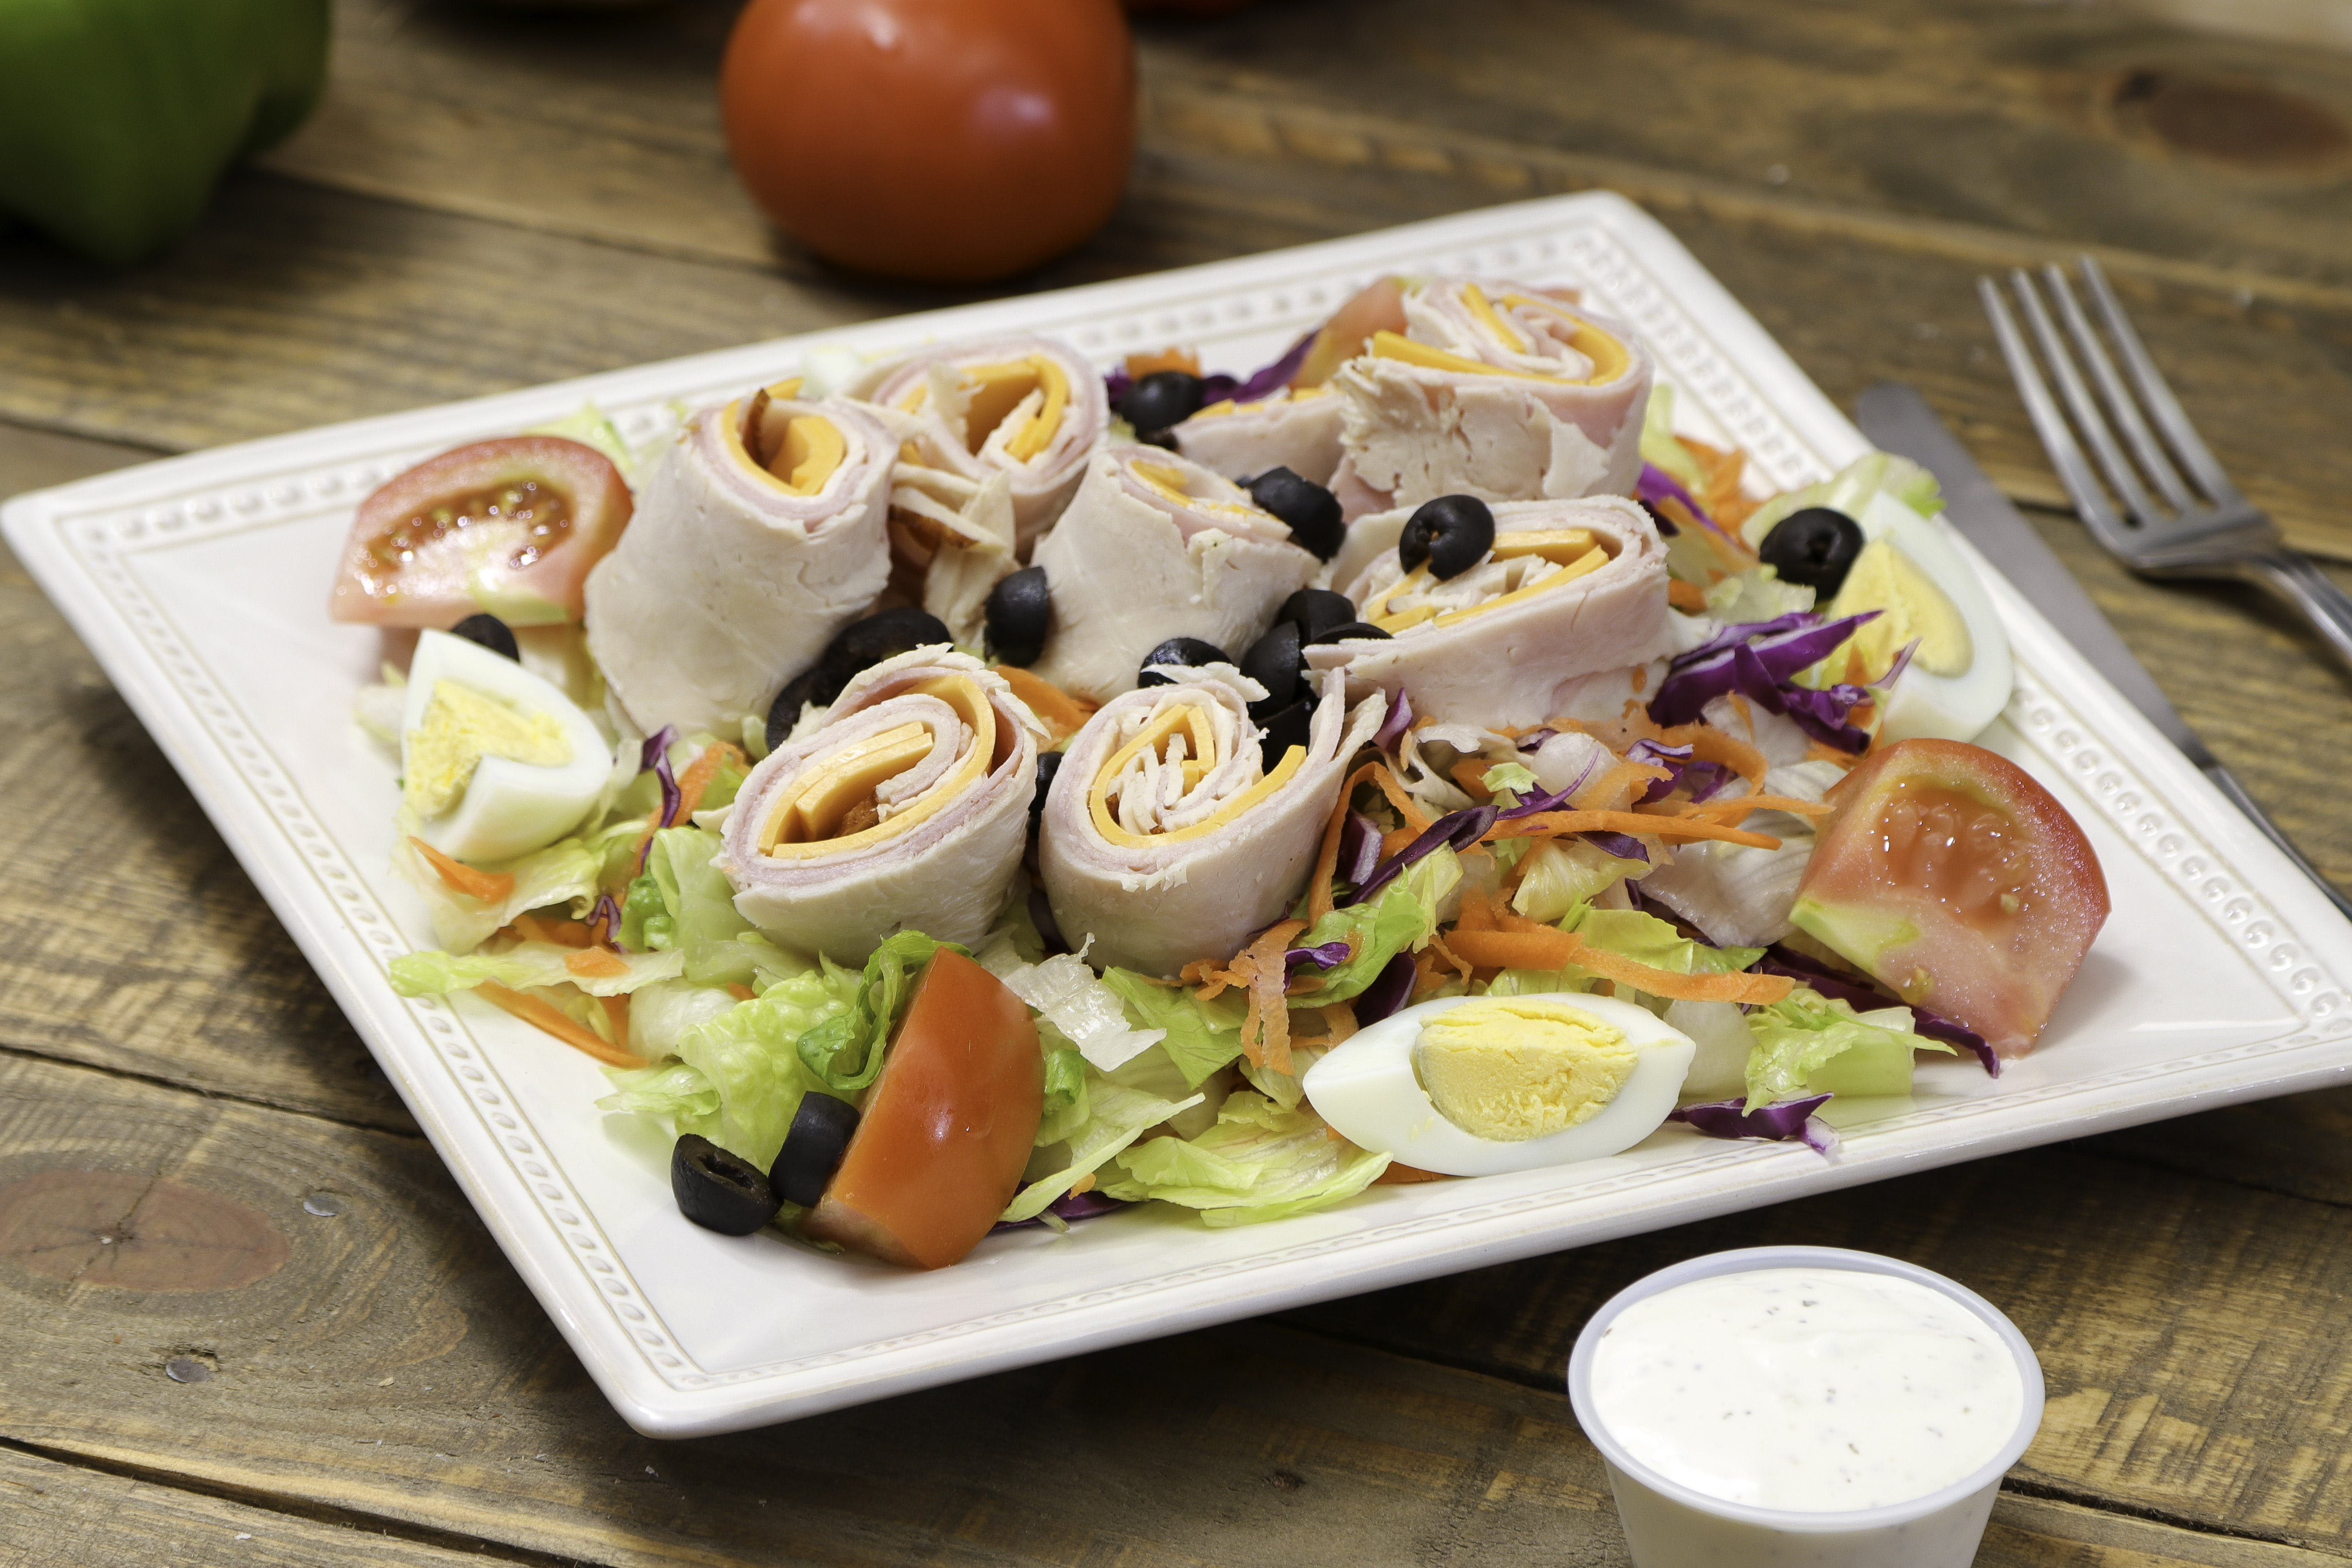 Chef's Salad from Ameci Pizza & Pasta - Lake Forest in Lake Forest, CA